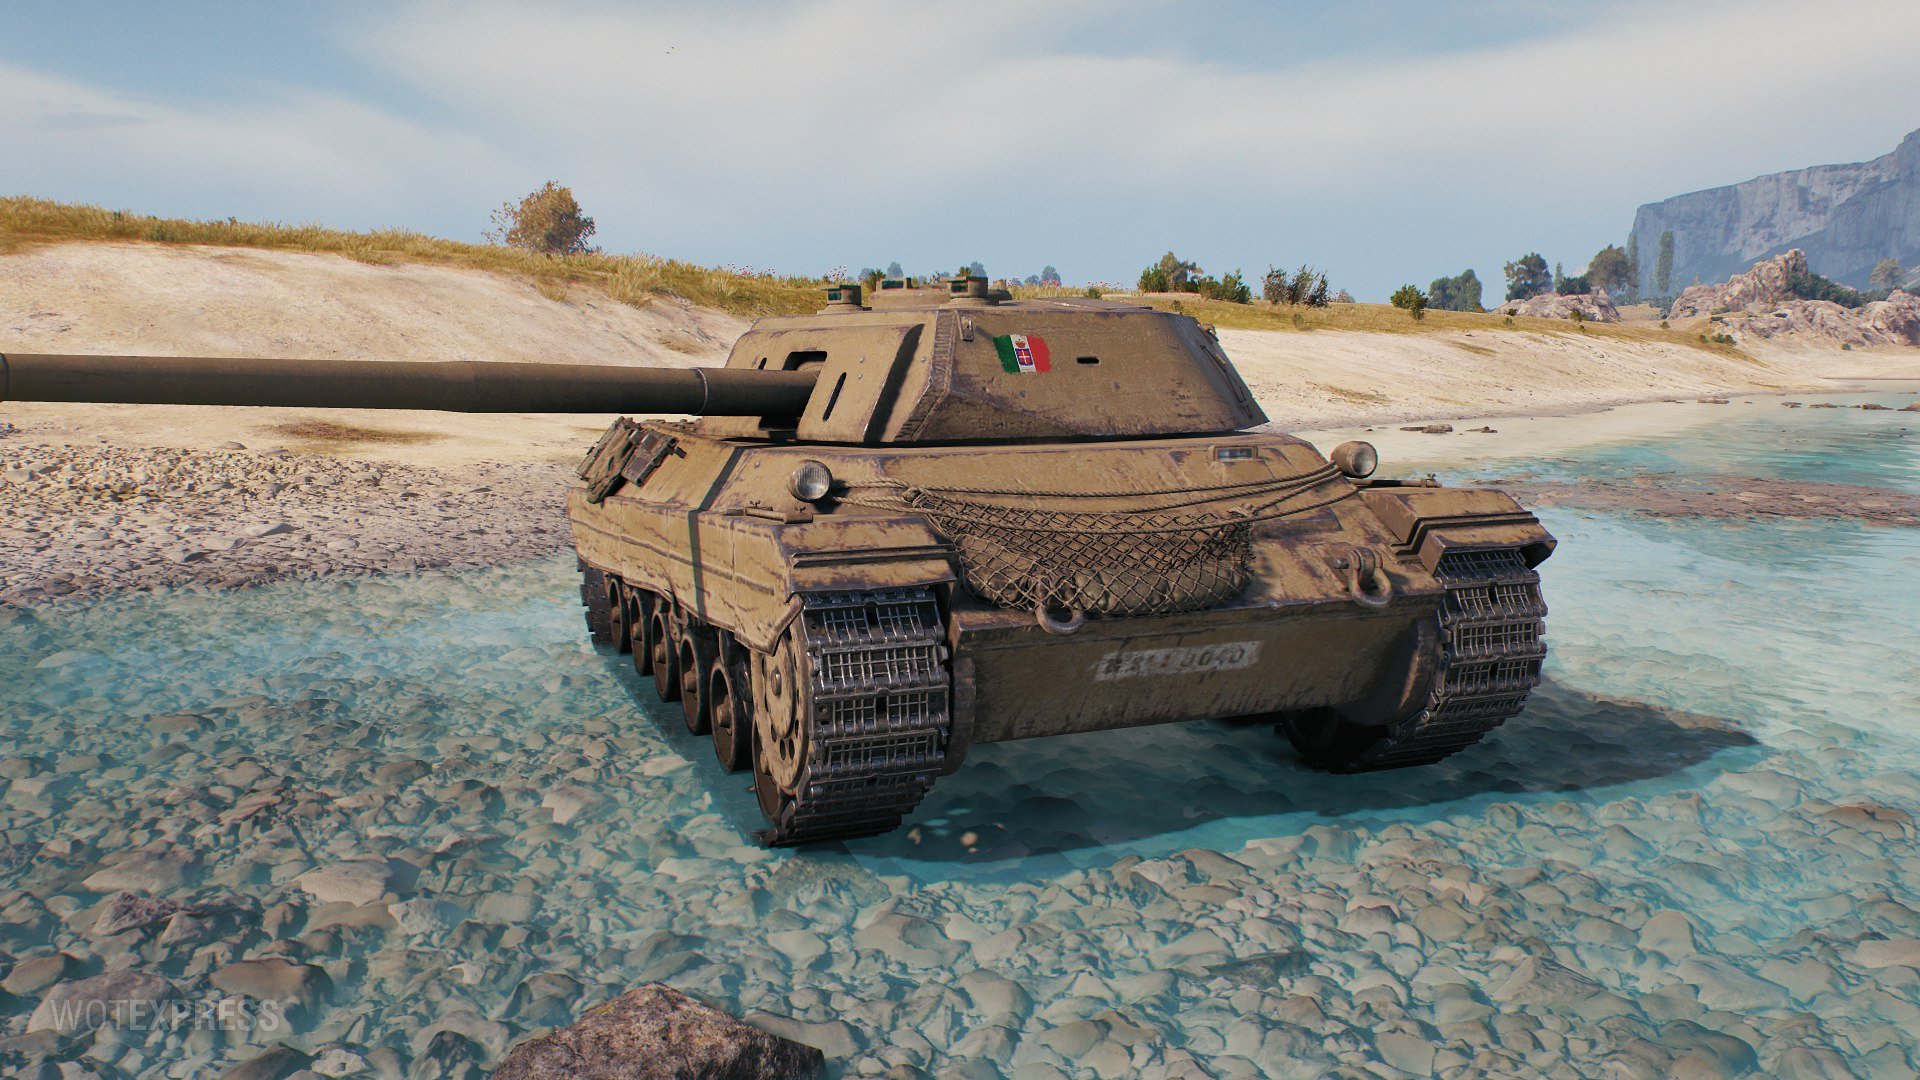 A 43 Wot the armored patrol – page 129 – wot, wows & wt: news, leaks